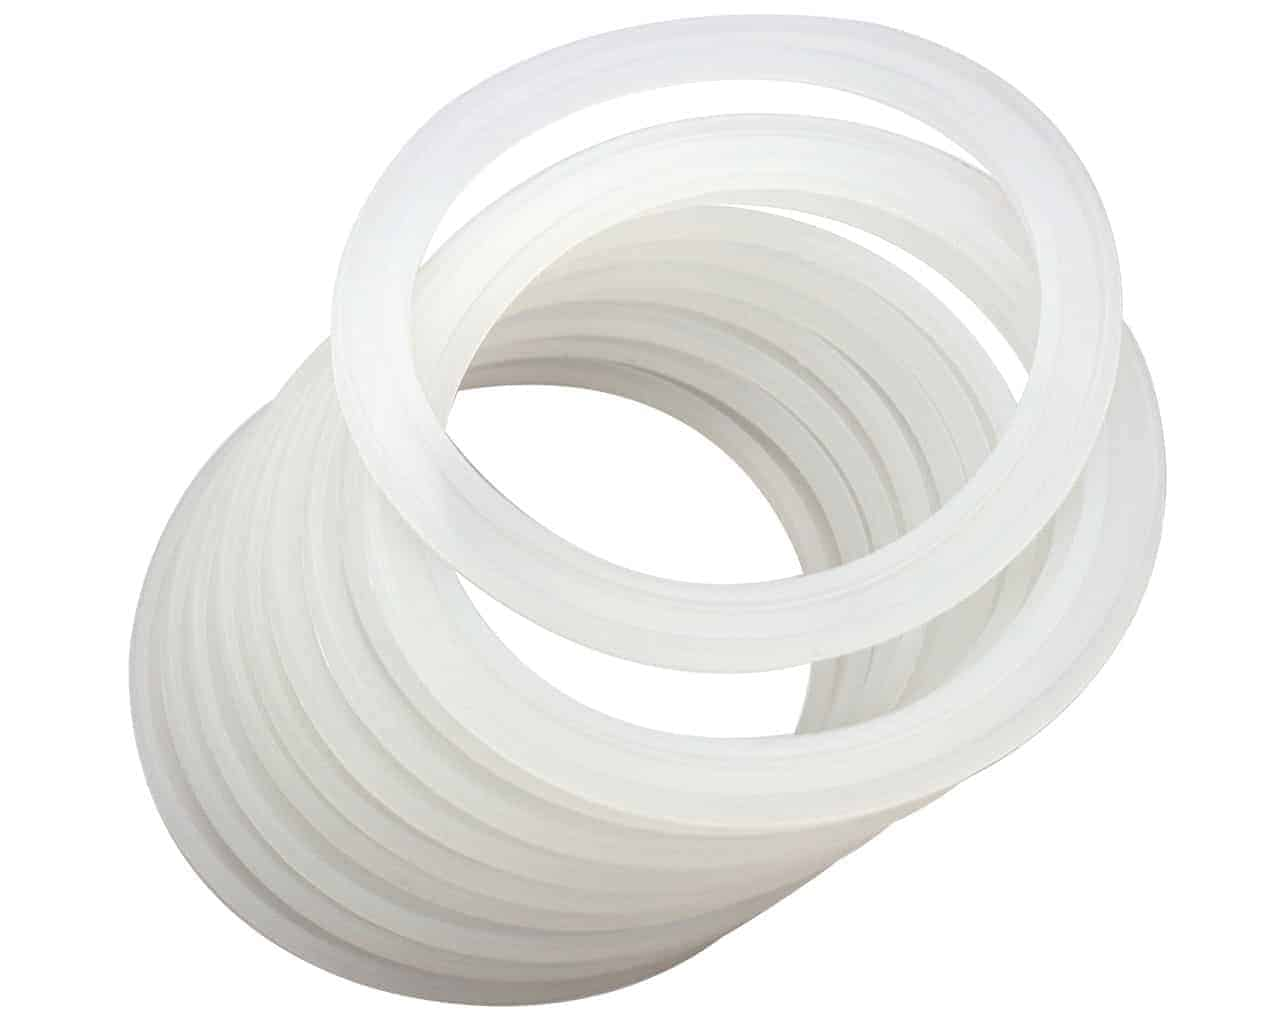 10 Pack Silicone Sealing Rings Gaskets for Leak Proof Mason Jar Lids Storage Cap